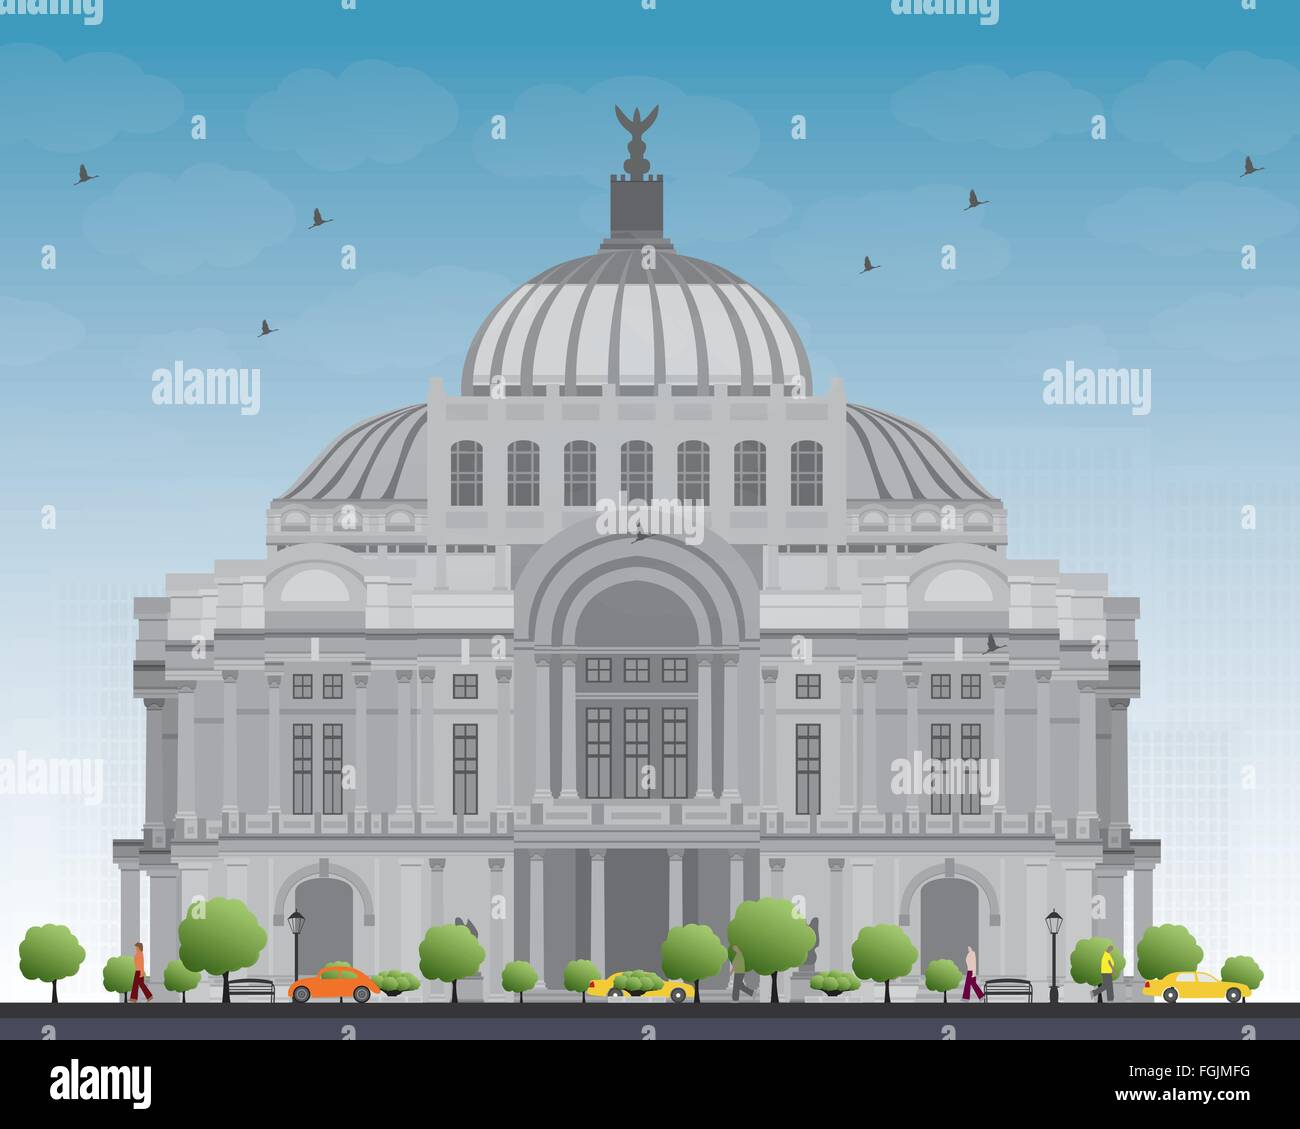 The Fine Arts Palace/Palacio de Bellas Artes in Mexico City, Mexico. Vector illustration. Business Travel and Tourism - Stock Vector